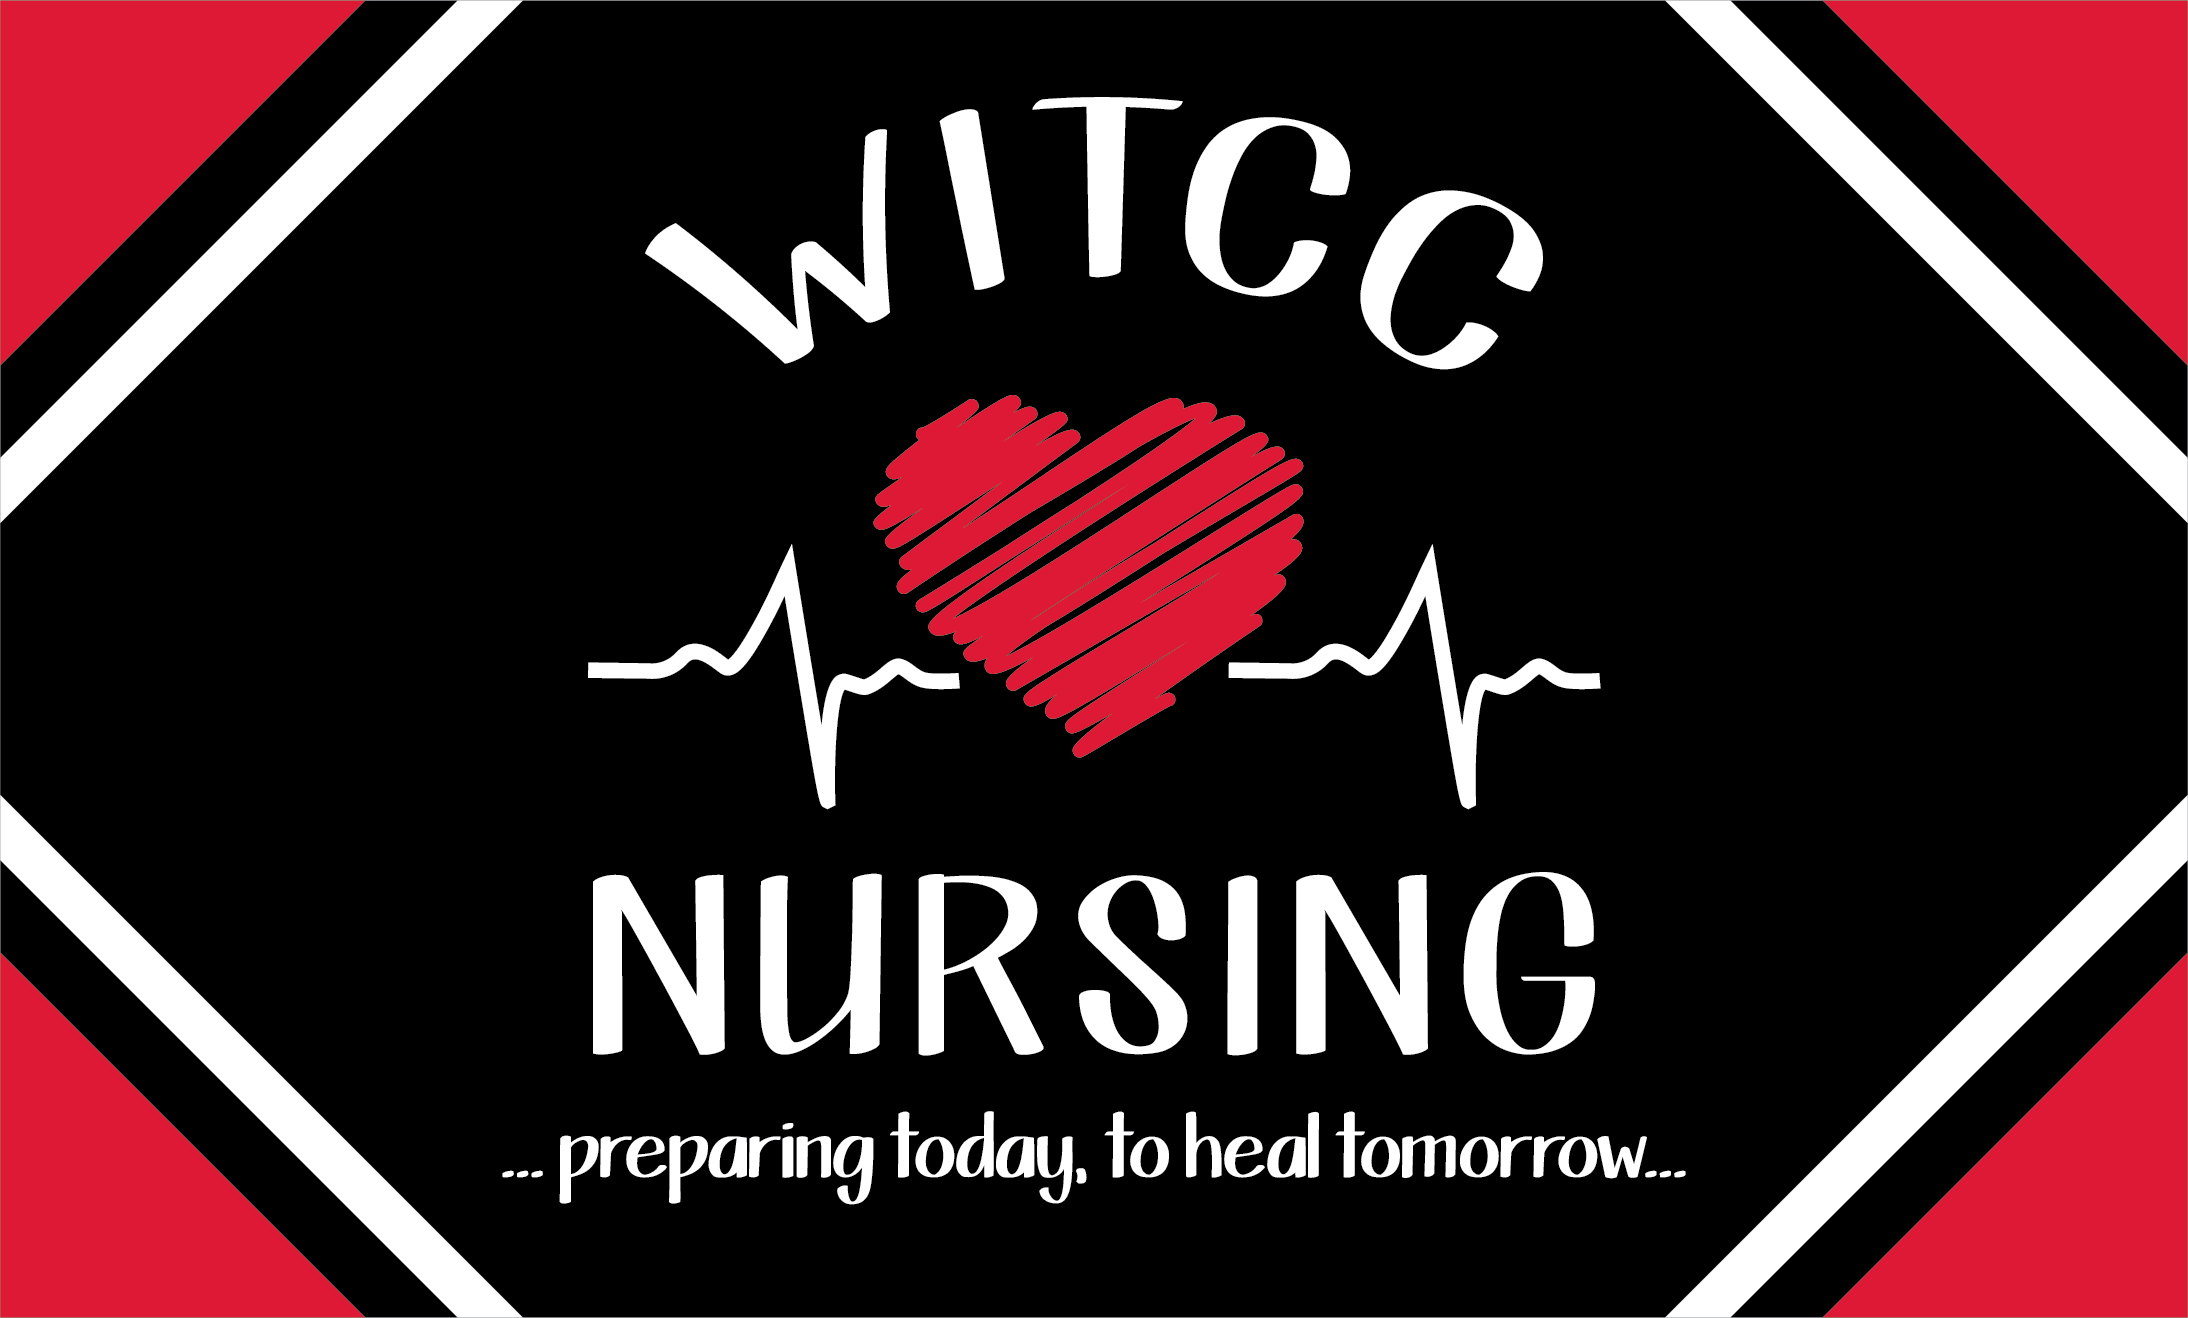 WITCC Nursing Spring 2020